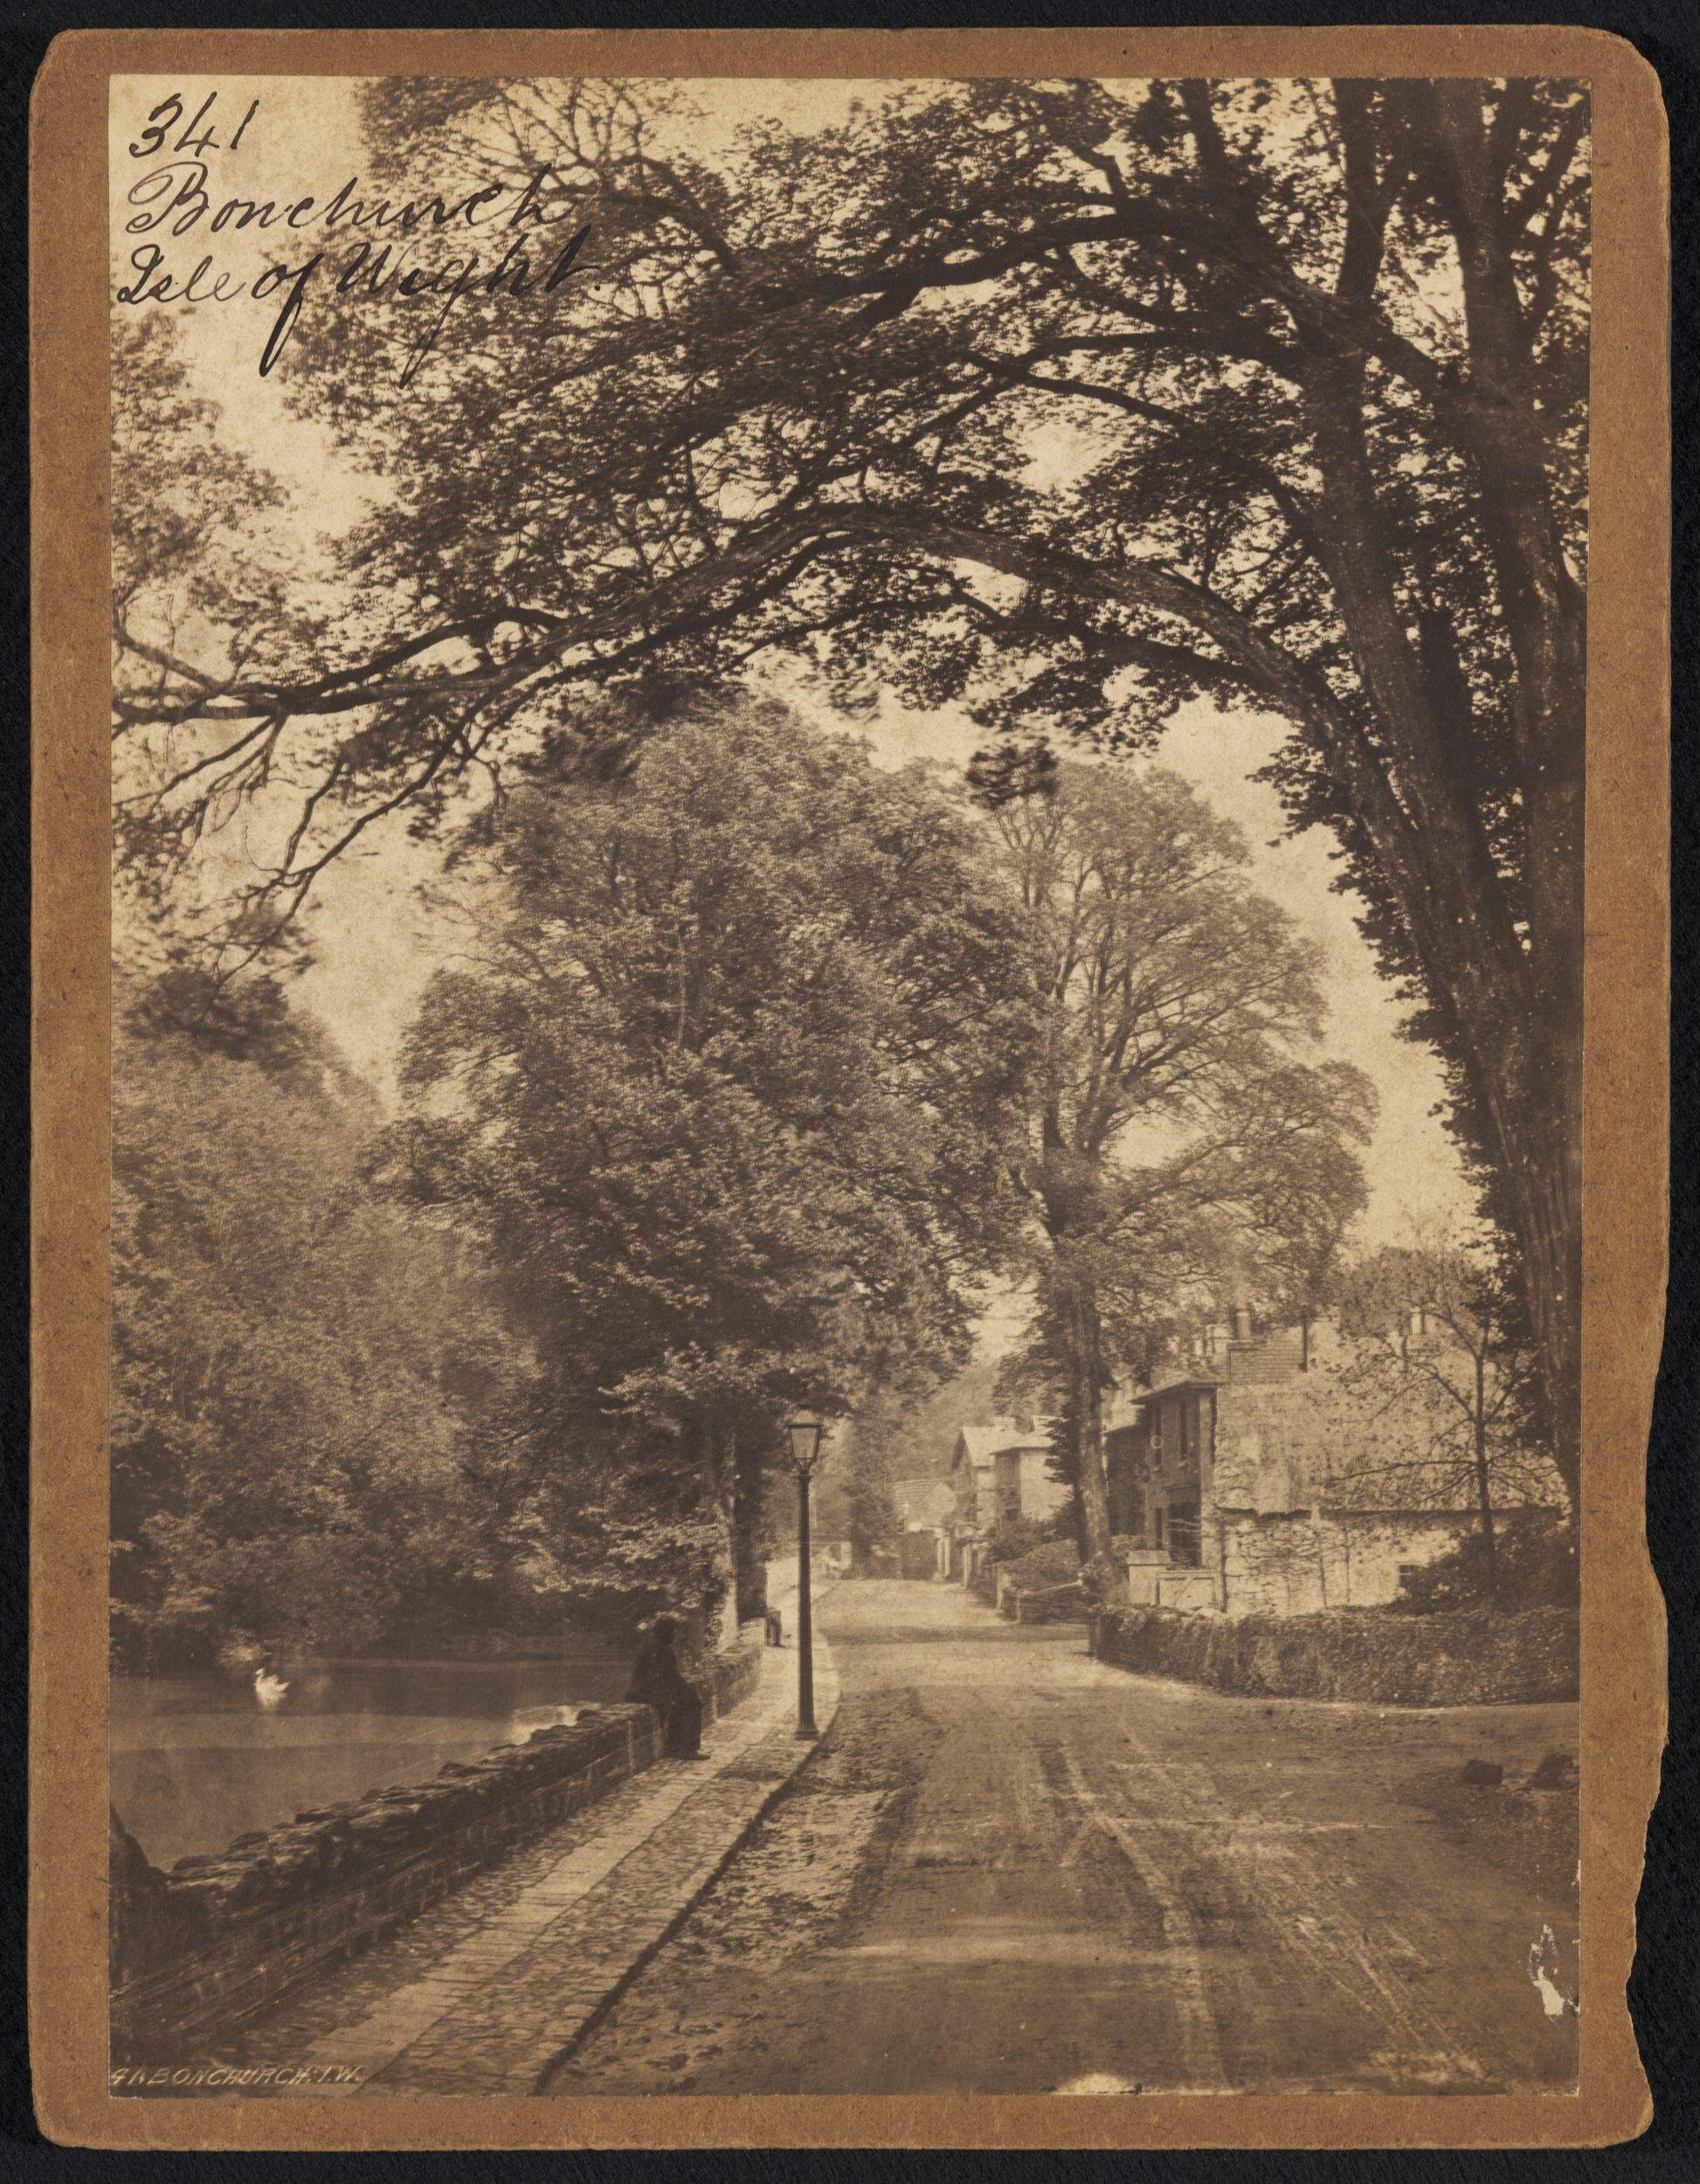 **Photograph by Francis Frith; Bonchurch, c.1860 (Victoria and Albert Museum         E.208:456-1994). Click to enlarge.